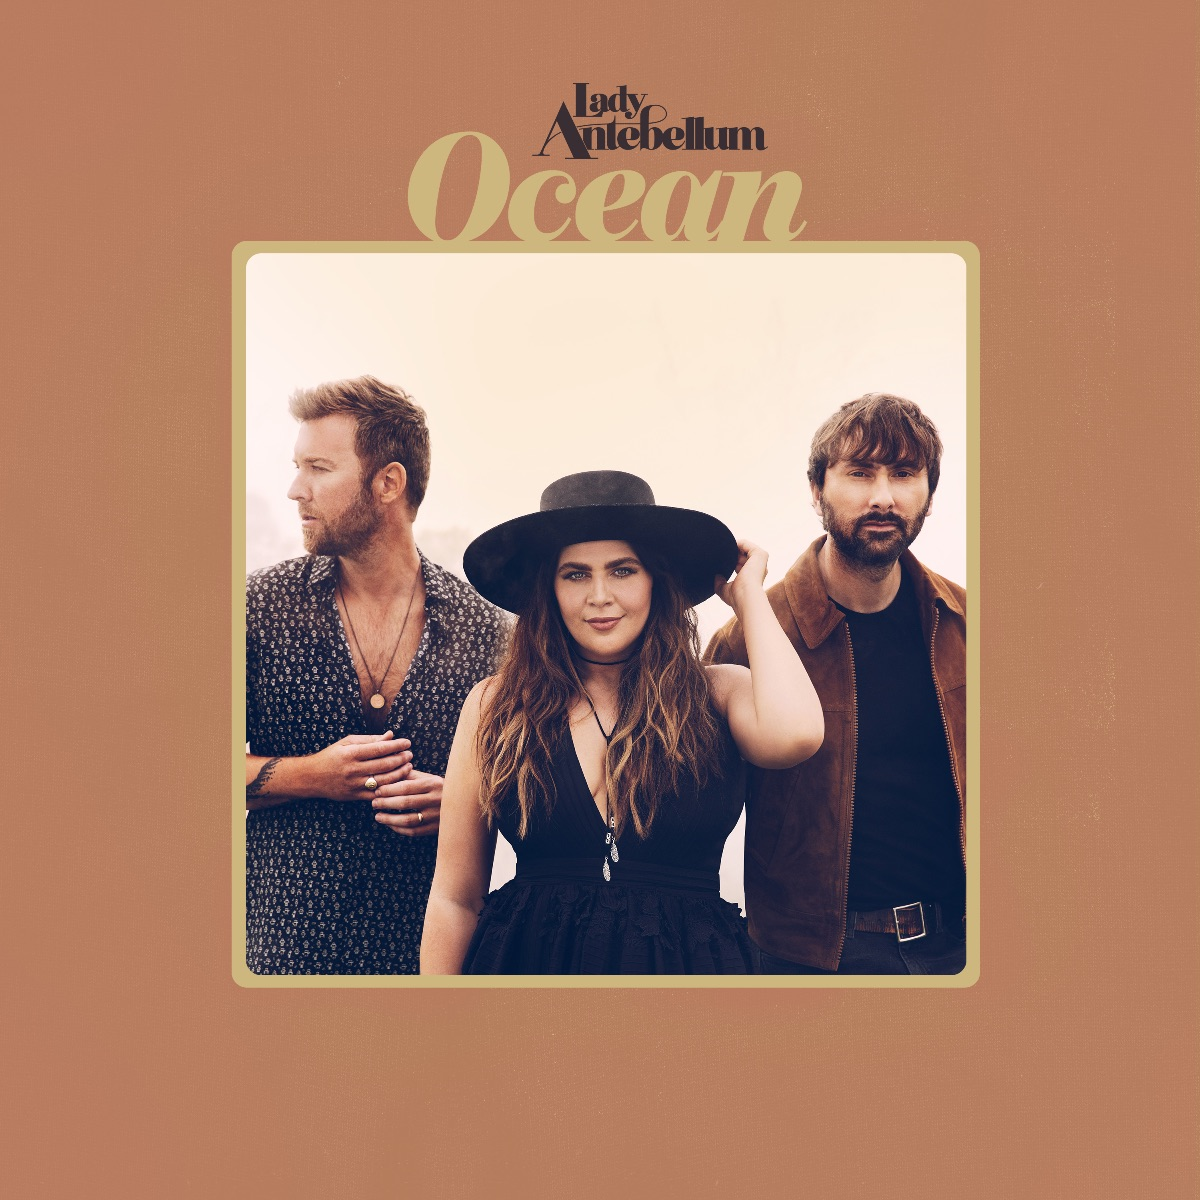 Lady Antebellum Album Out 11/15